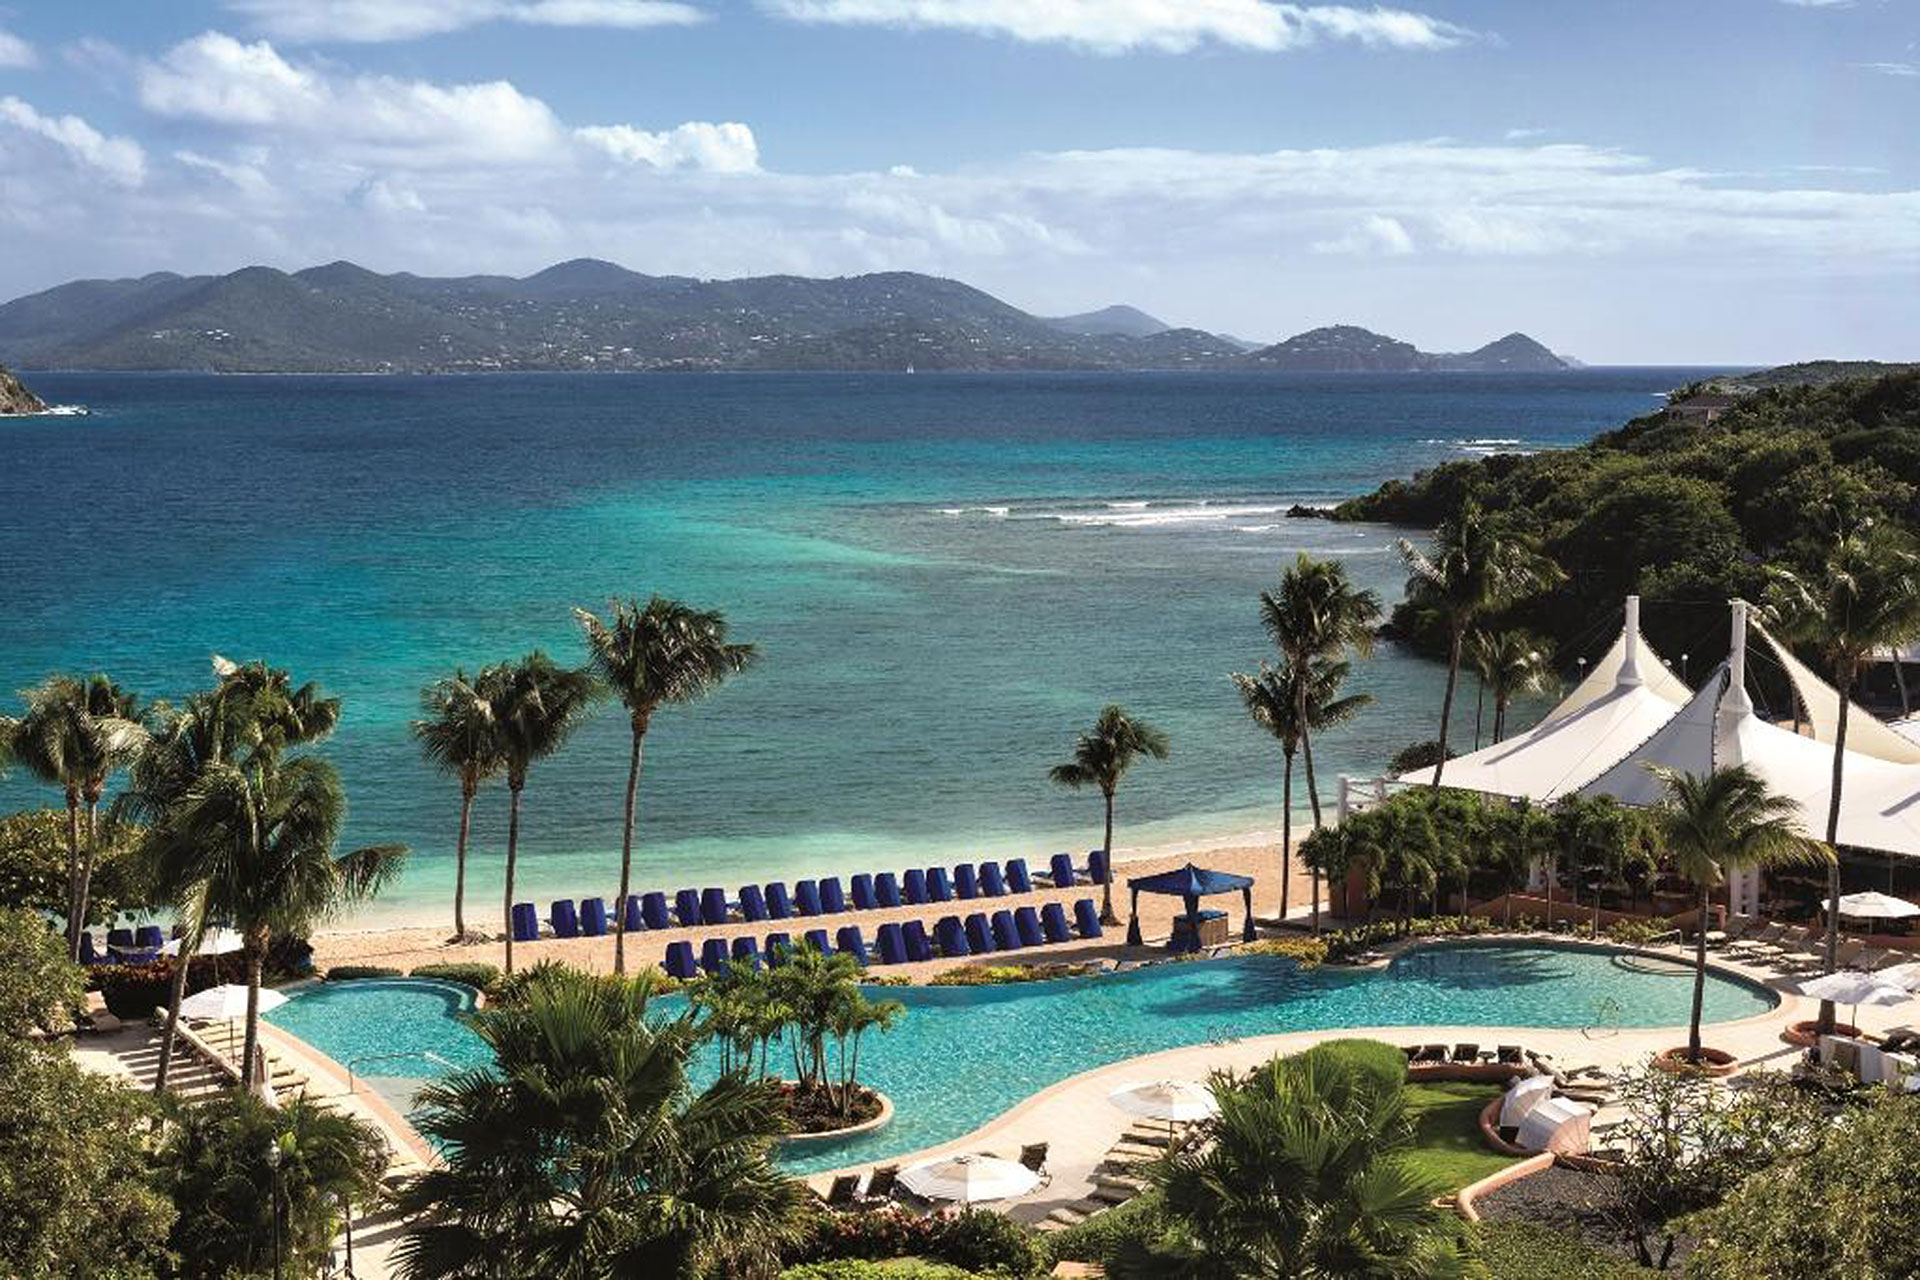 Infinity Pool at The Ritz-Carlton, St. Thomas; Courtesy of The Ritz-Carlton, St. Thomas